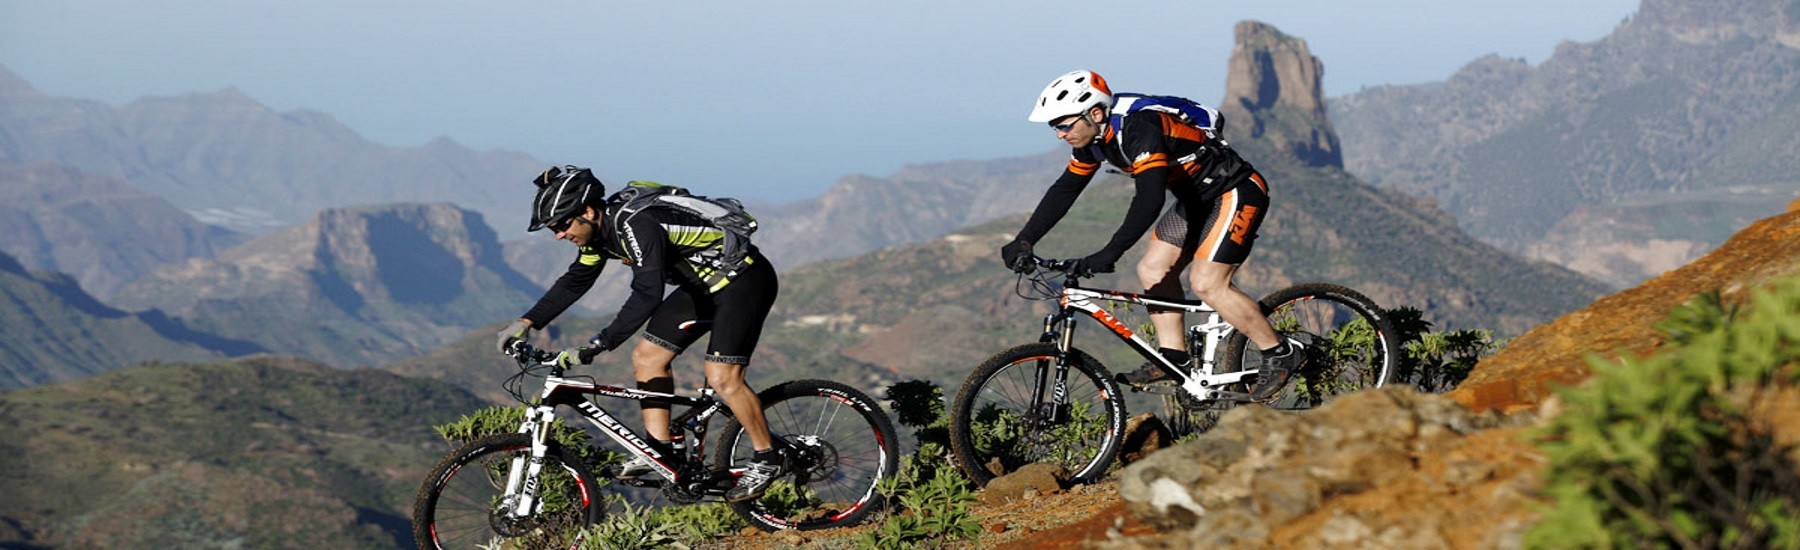 Mountain Biking en Gran Canaria